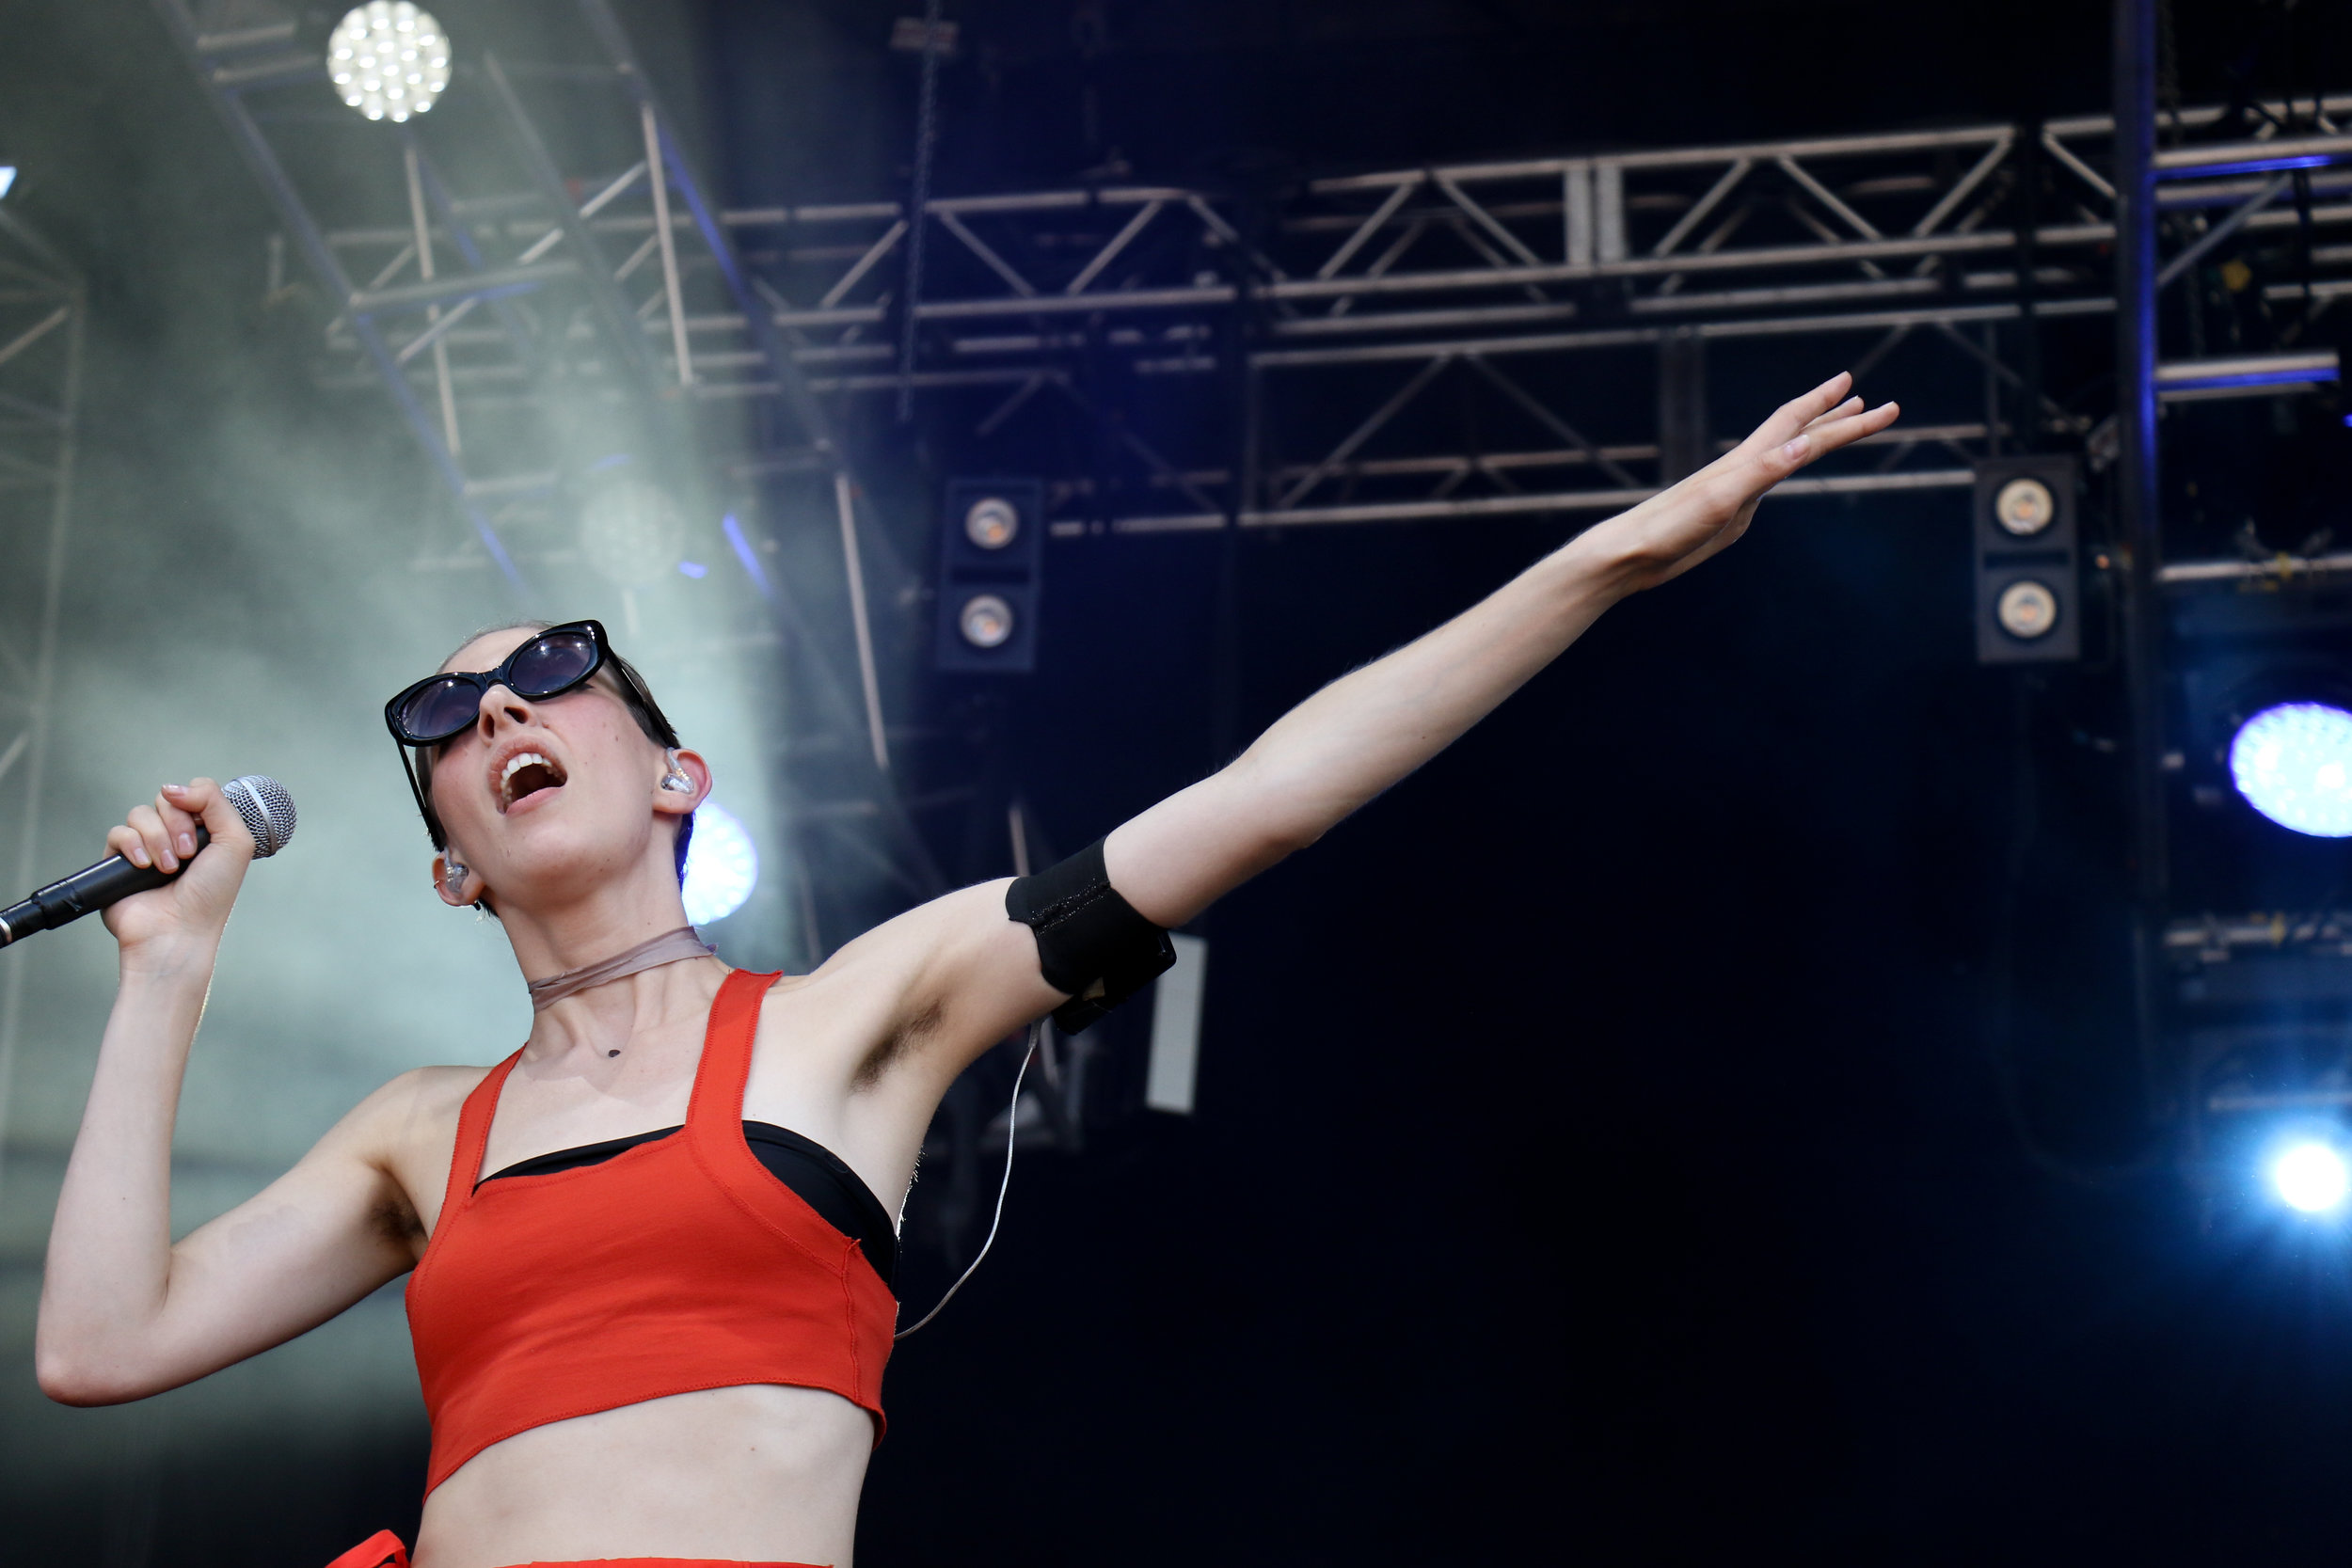 Chairlift puts on a breathtaking show Friday of ACL.